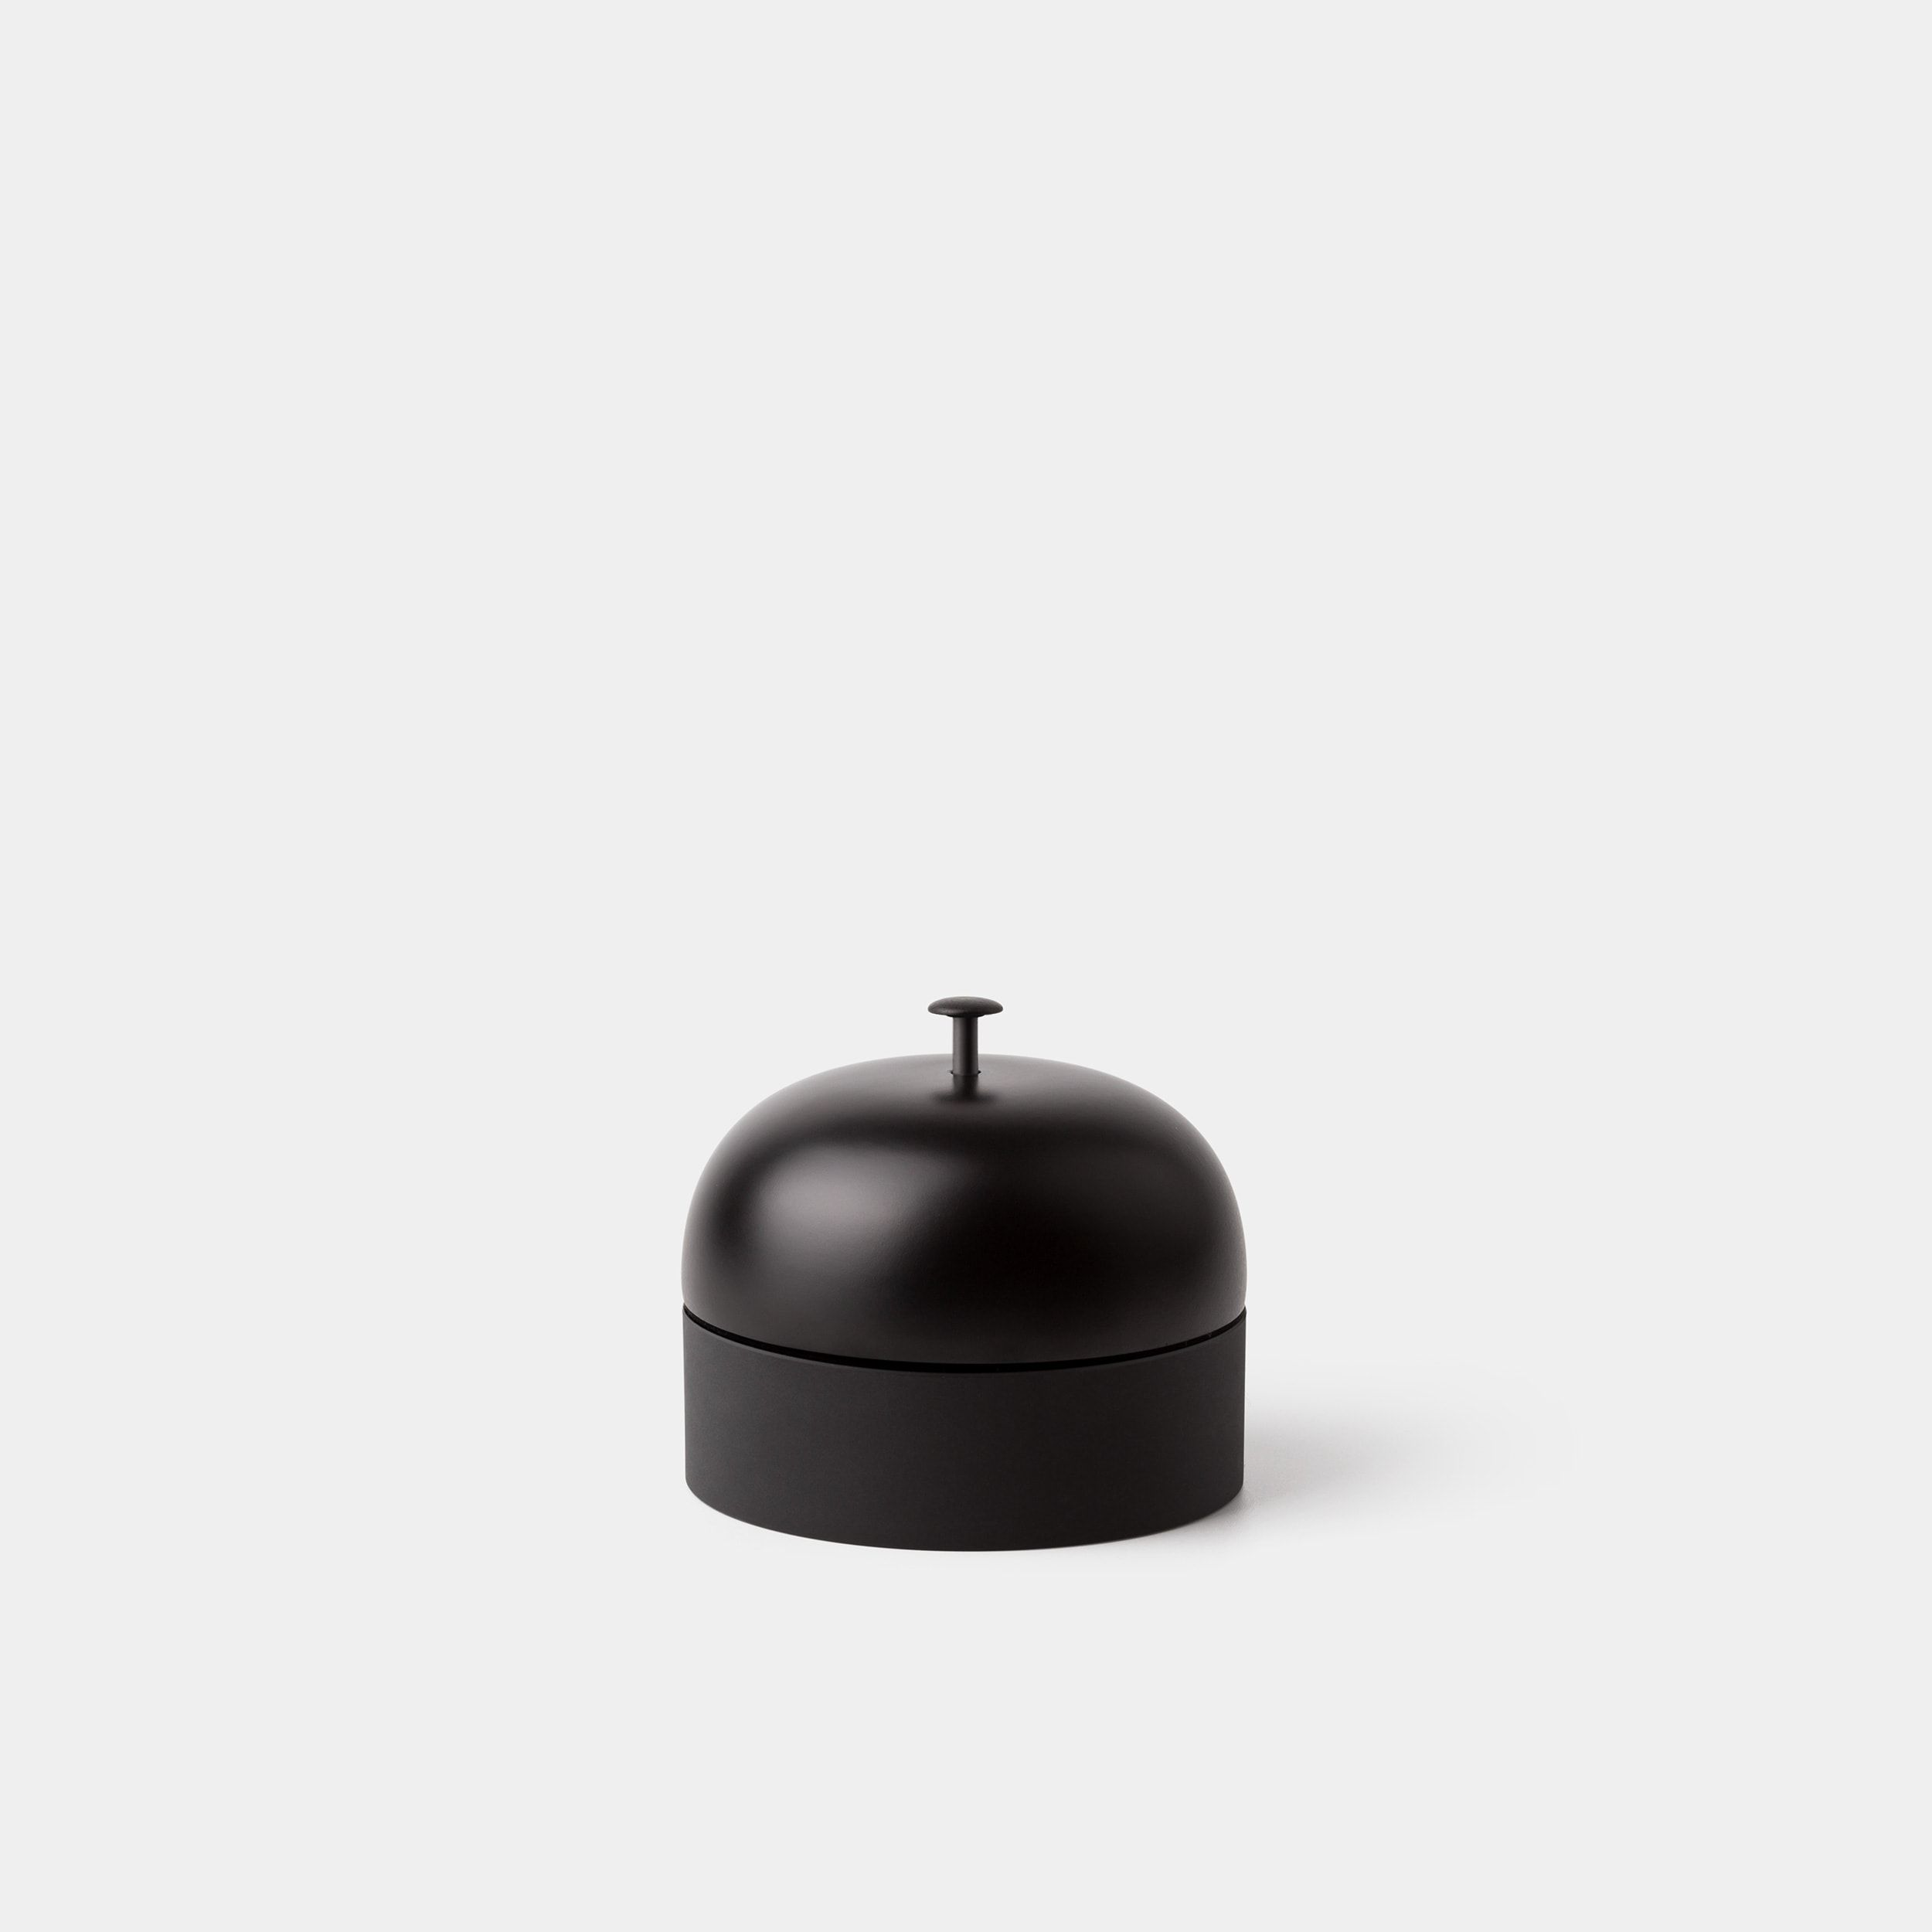 A modern table bell by Tokyo-based Timbre, whose creative line of products are aimed to enrich life using ...